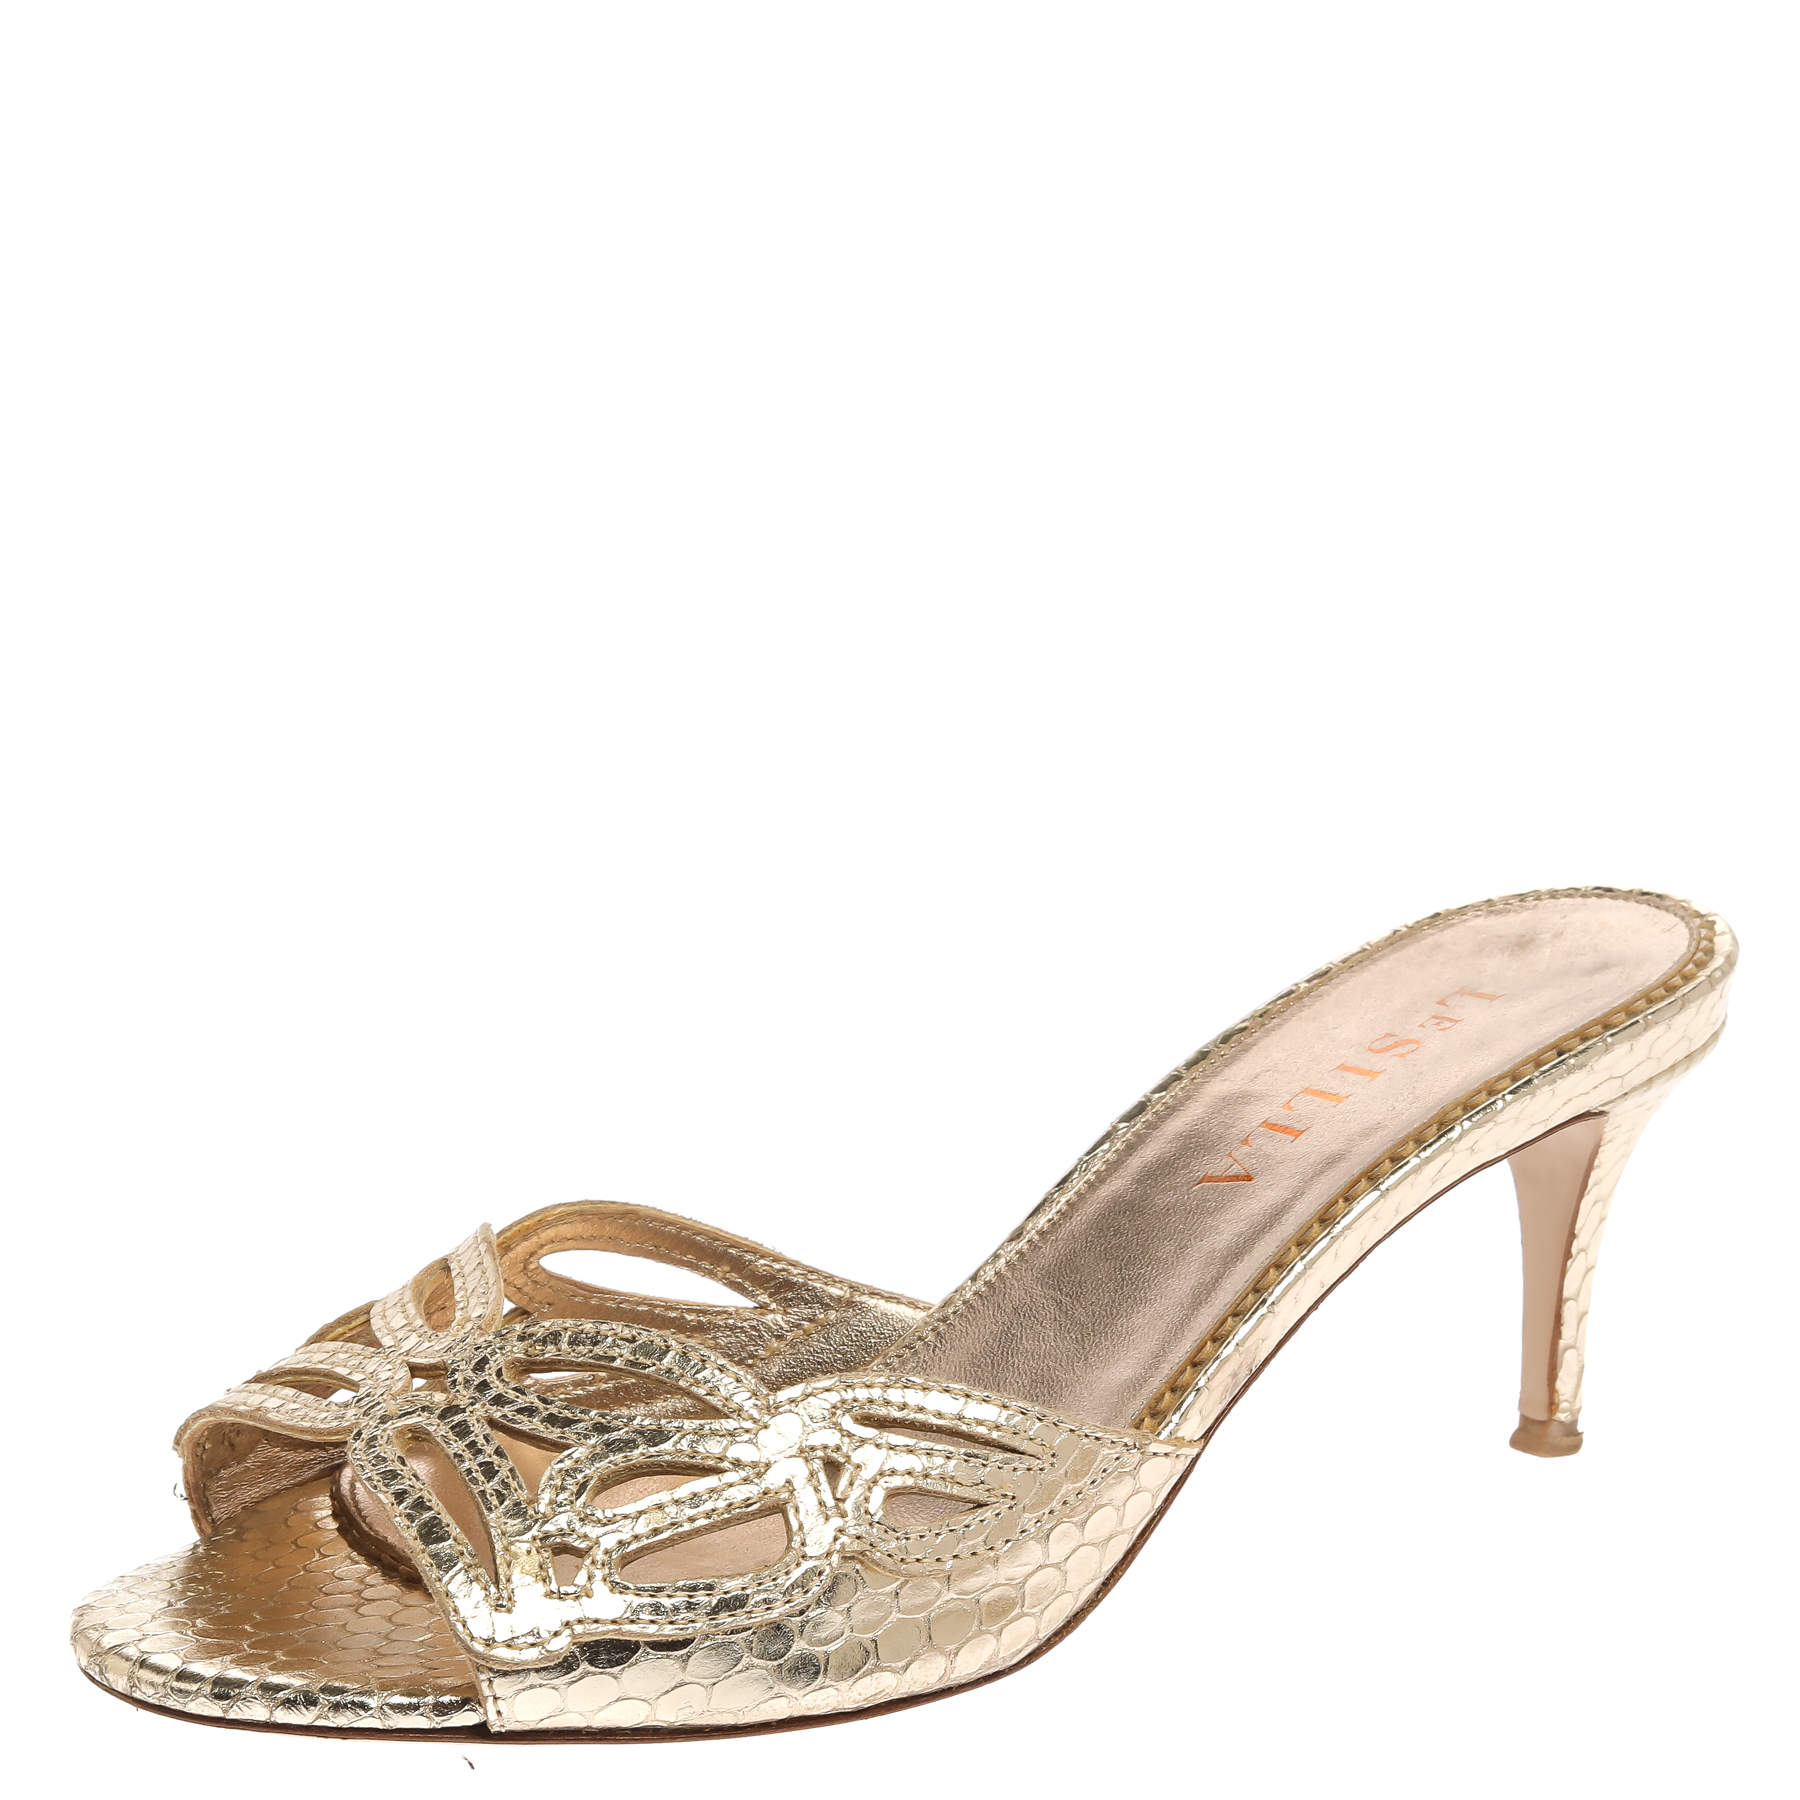 Le Silla Golden Python Embossed Leather Laser Cut Slide Sandals Size 36